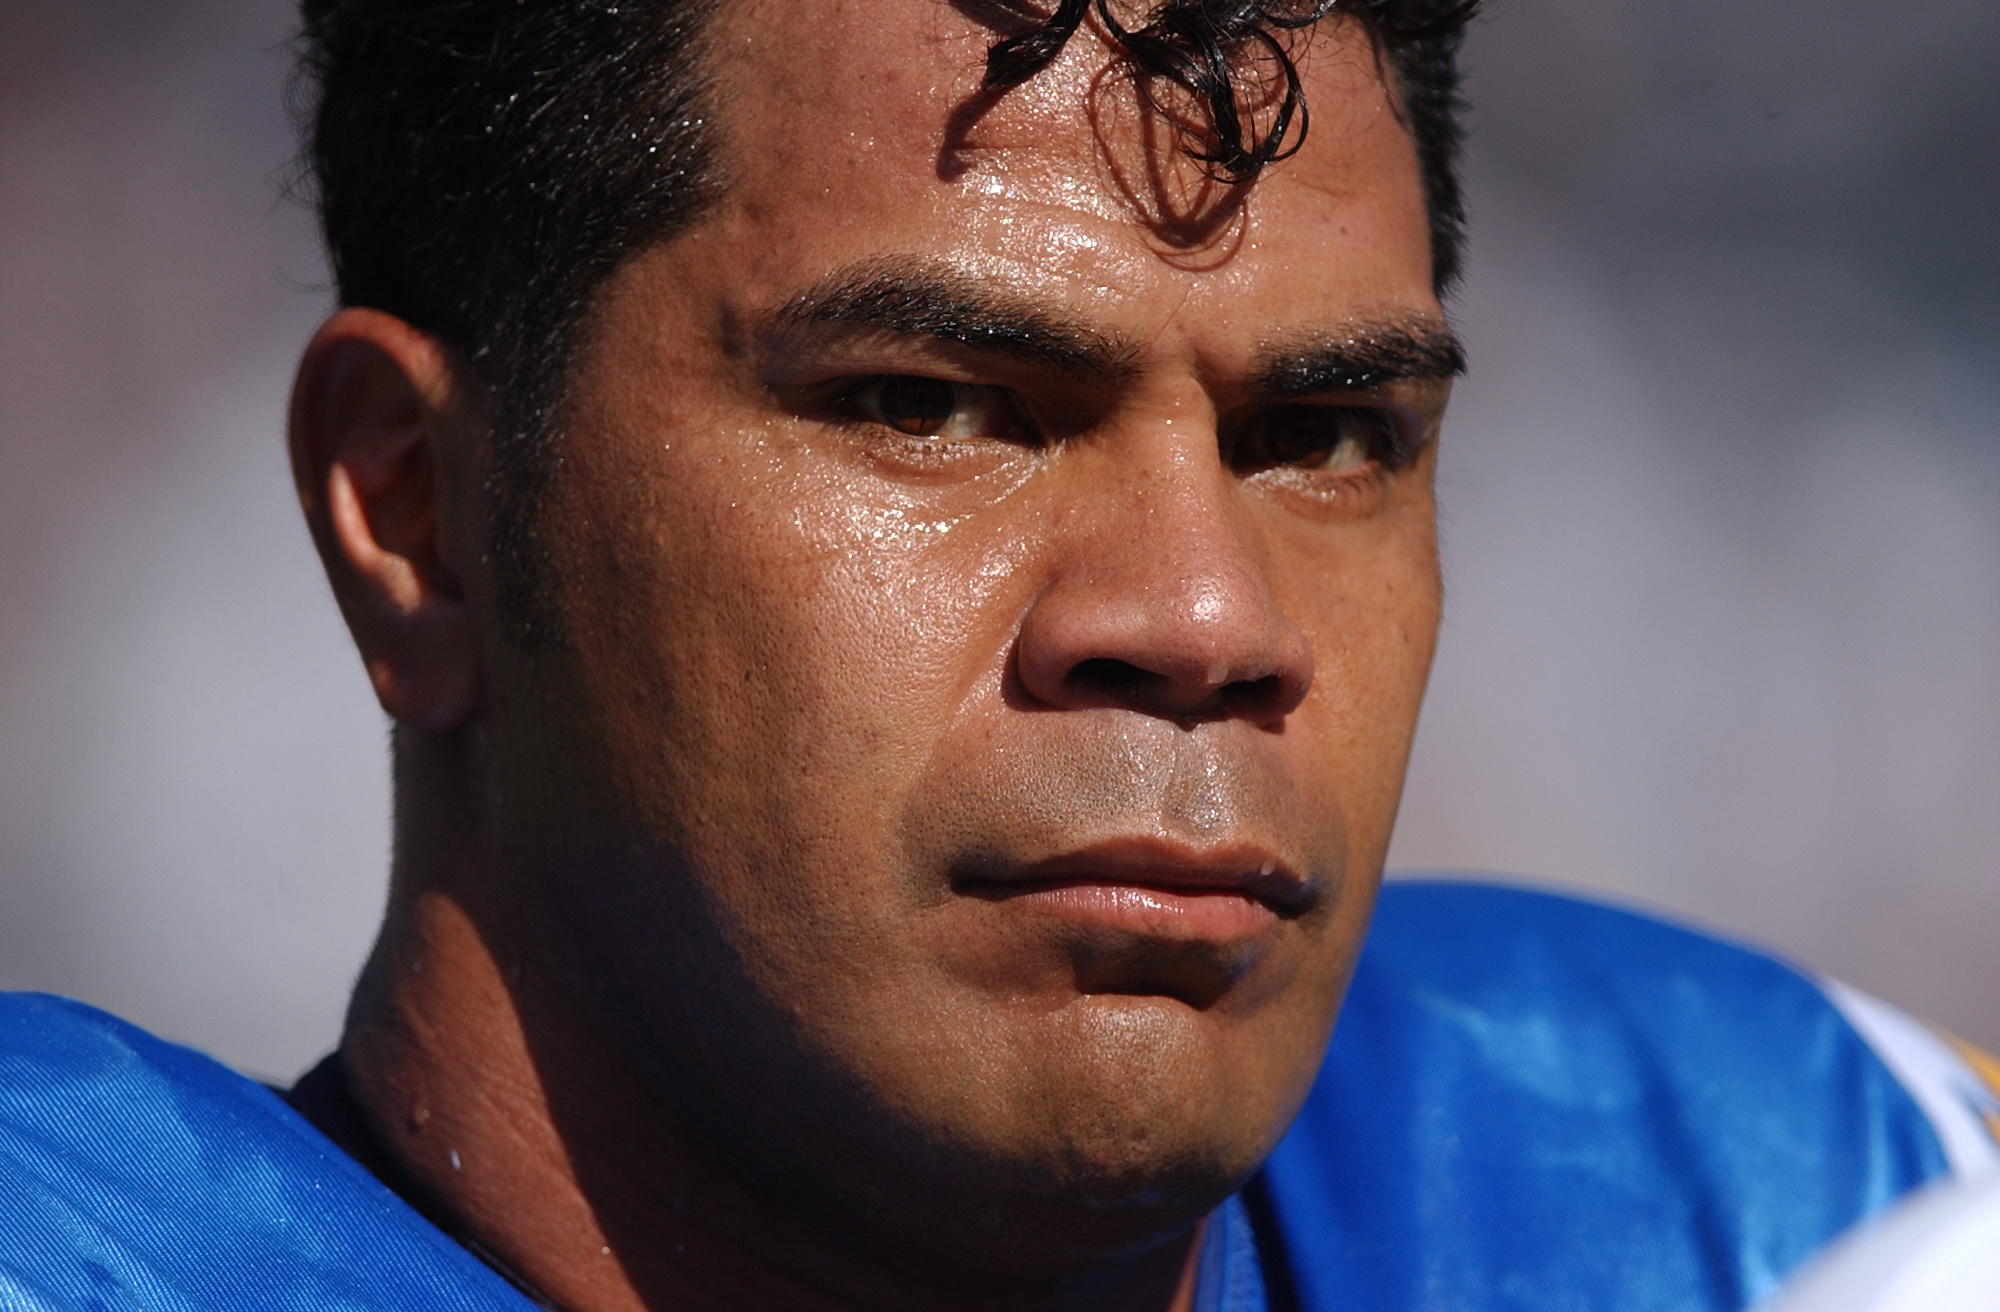 Junior Seau looks on during a Chargers game